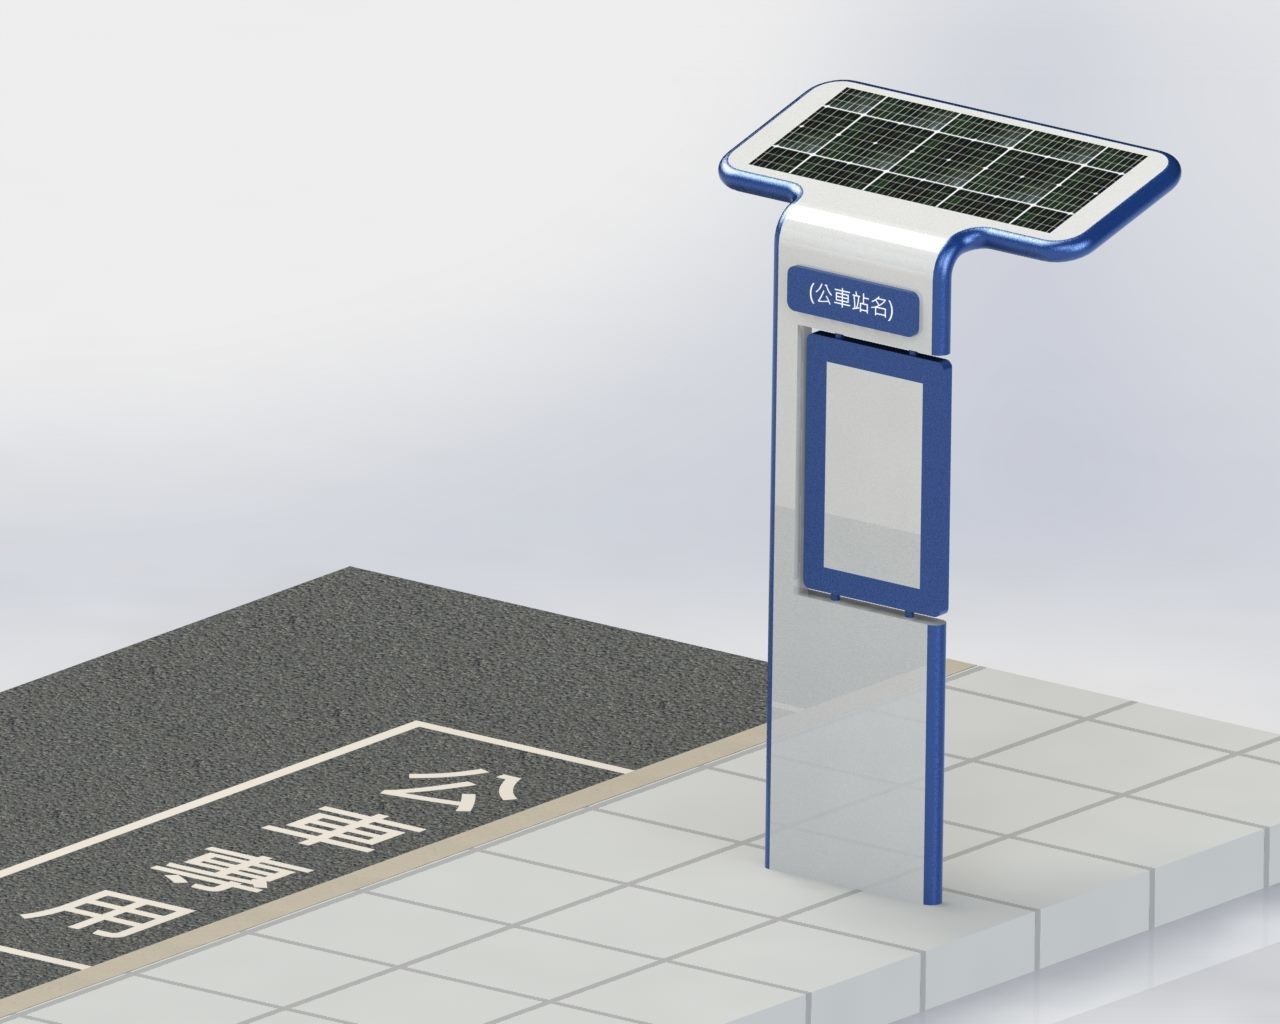 Bus, Public transport, 台北市公共运输处, Electricity, Electricity generation, Solar energy, Green energy, Bus stop, Transport, Product design, angle, product, technology, product, angle